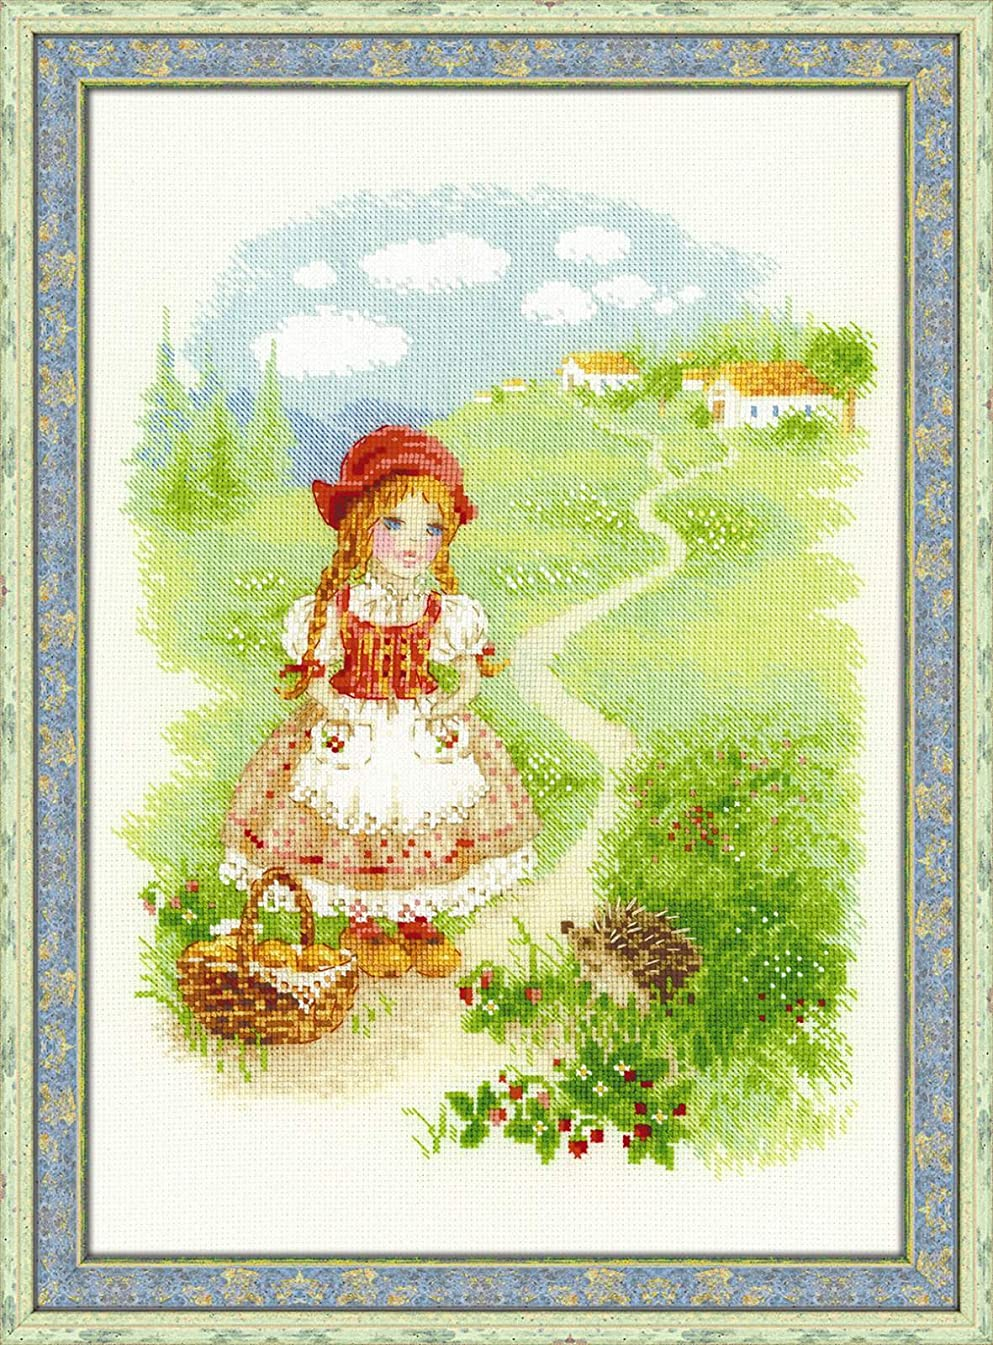 RIOLIS 1736 Little Red Riding Hood, Counted Cross Stitch Kit 8.25